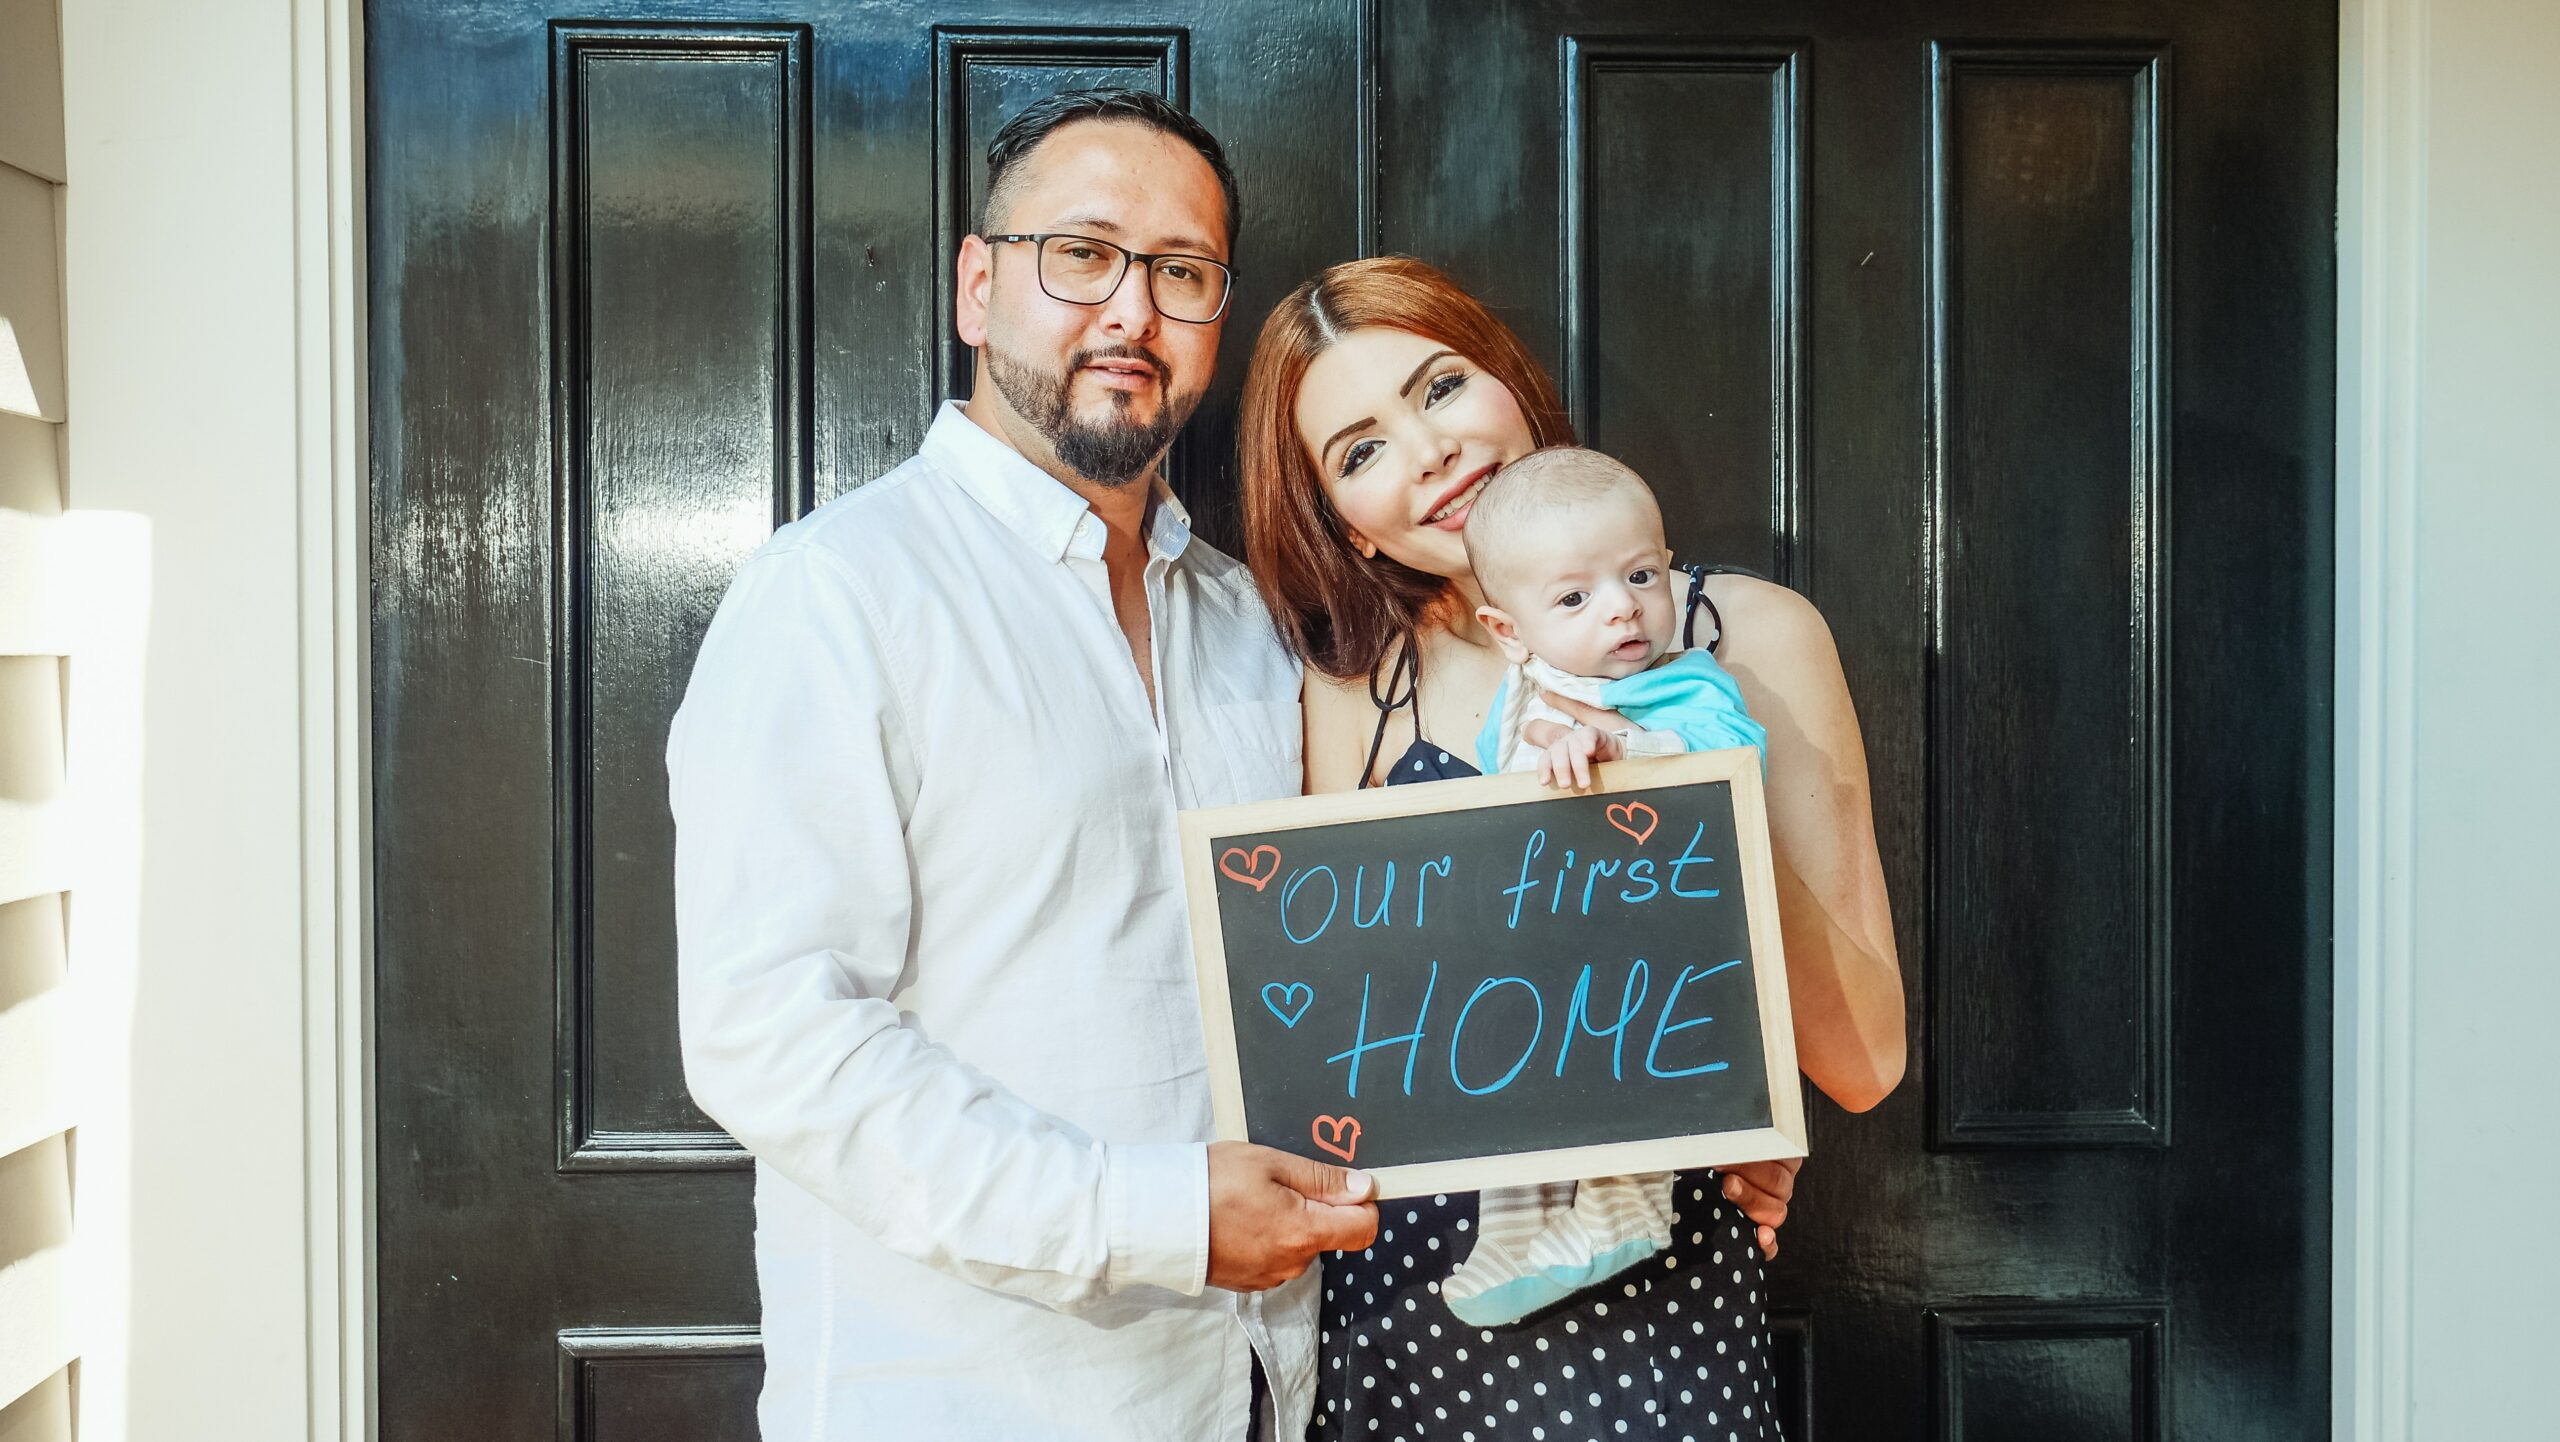 our first home family in front of door holding sign